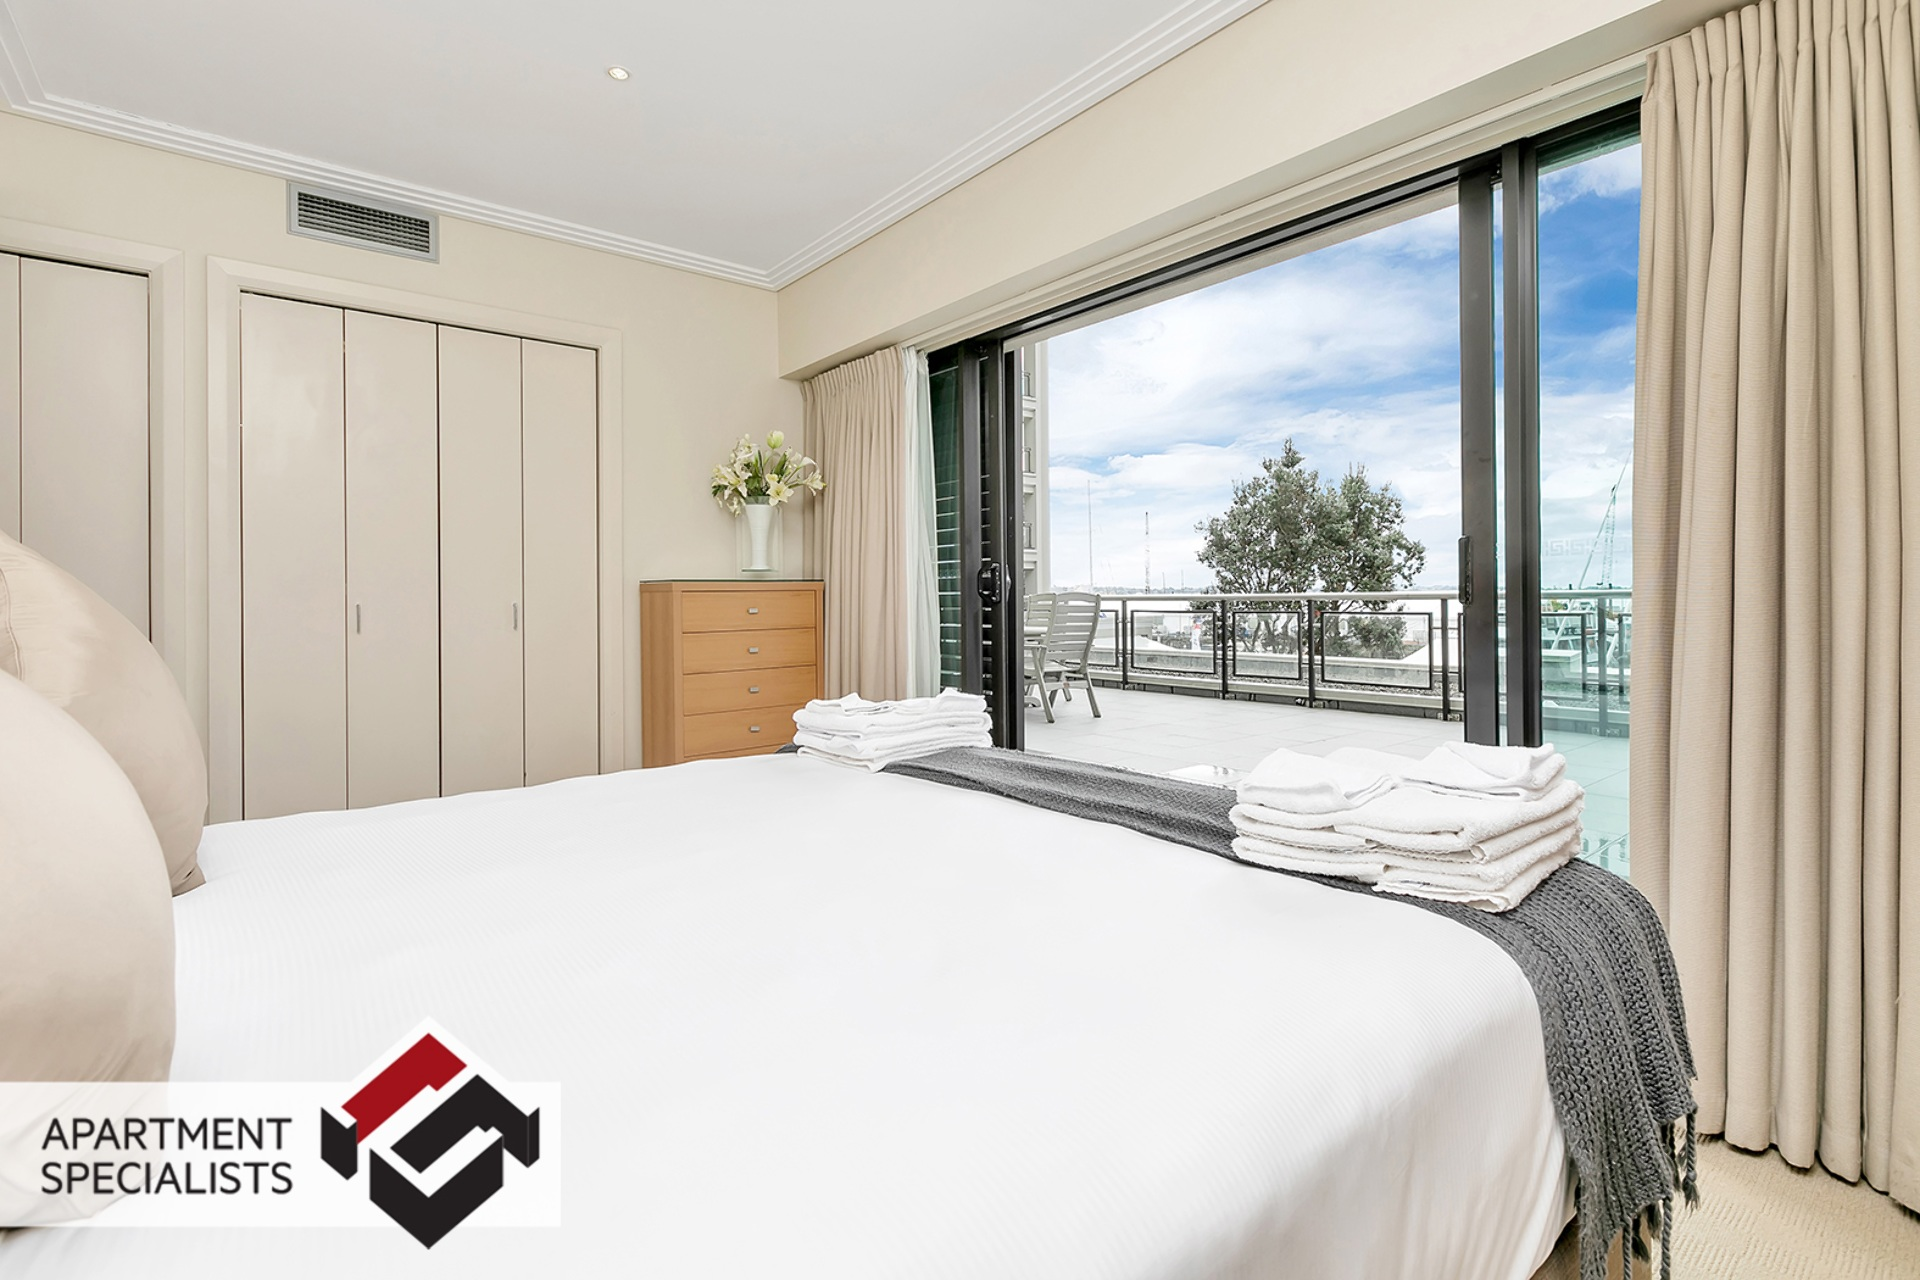 9 | 99 Customs Street West, City Centre | Apartment Specialists